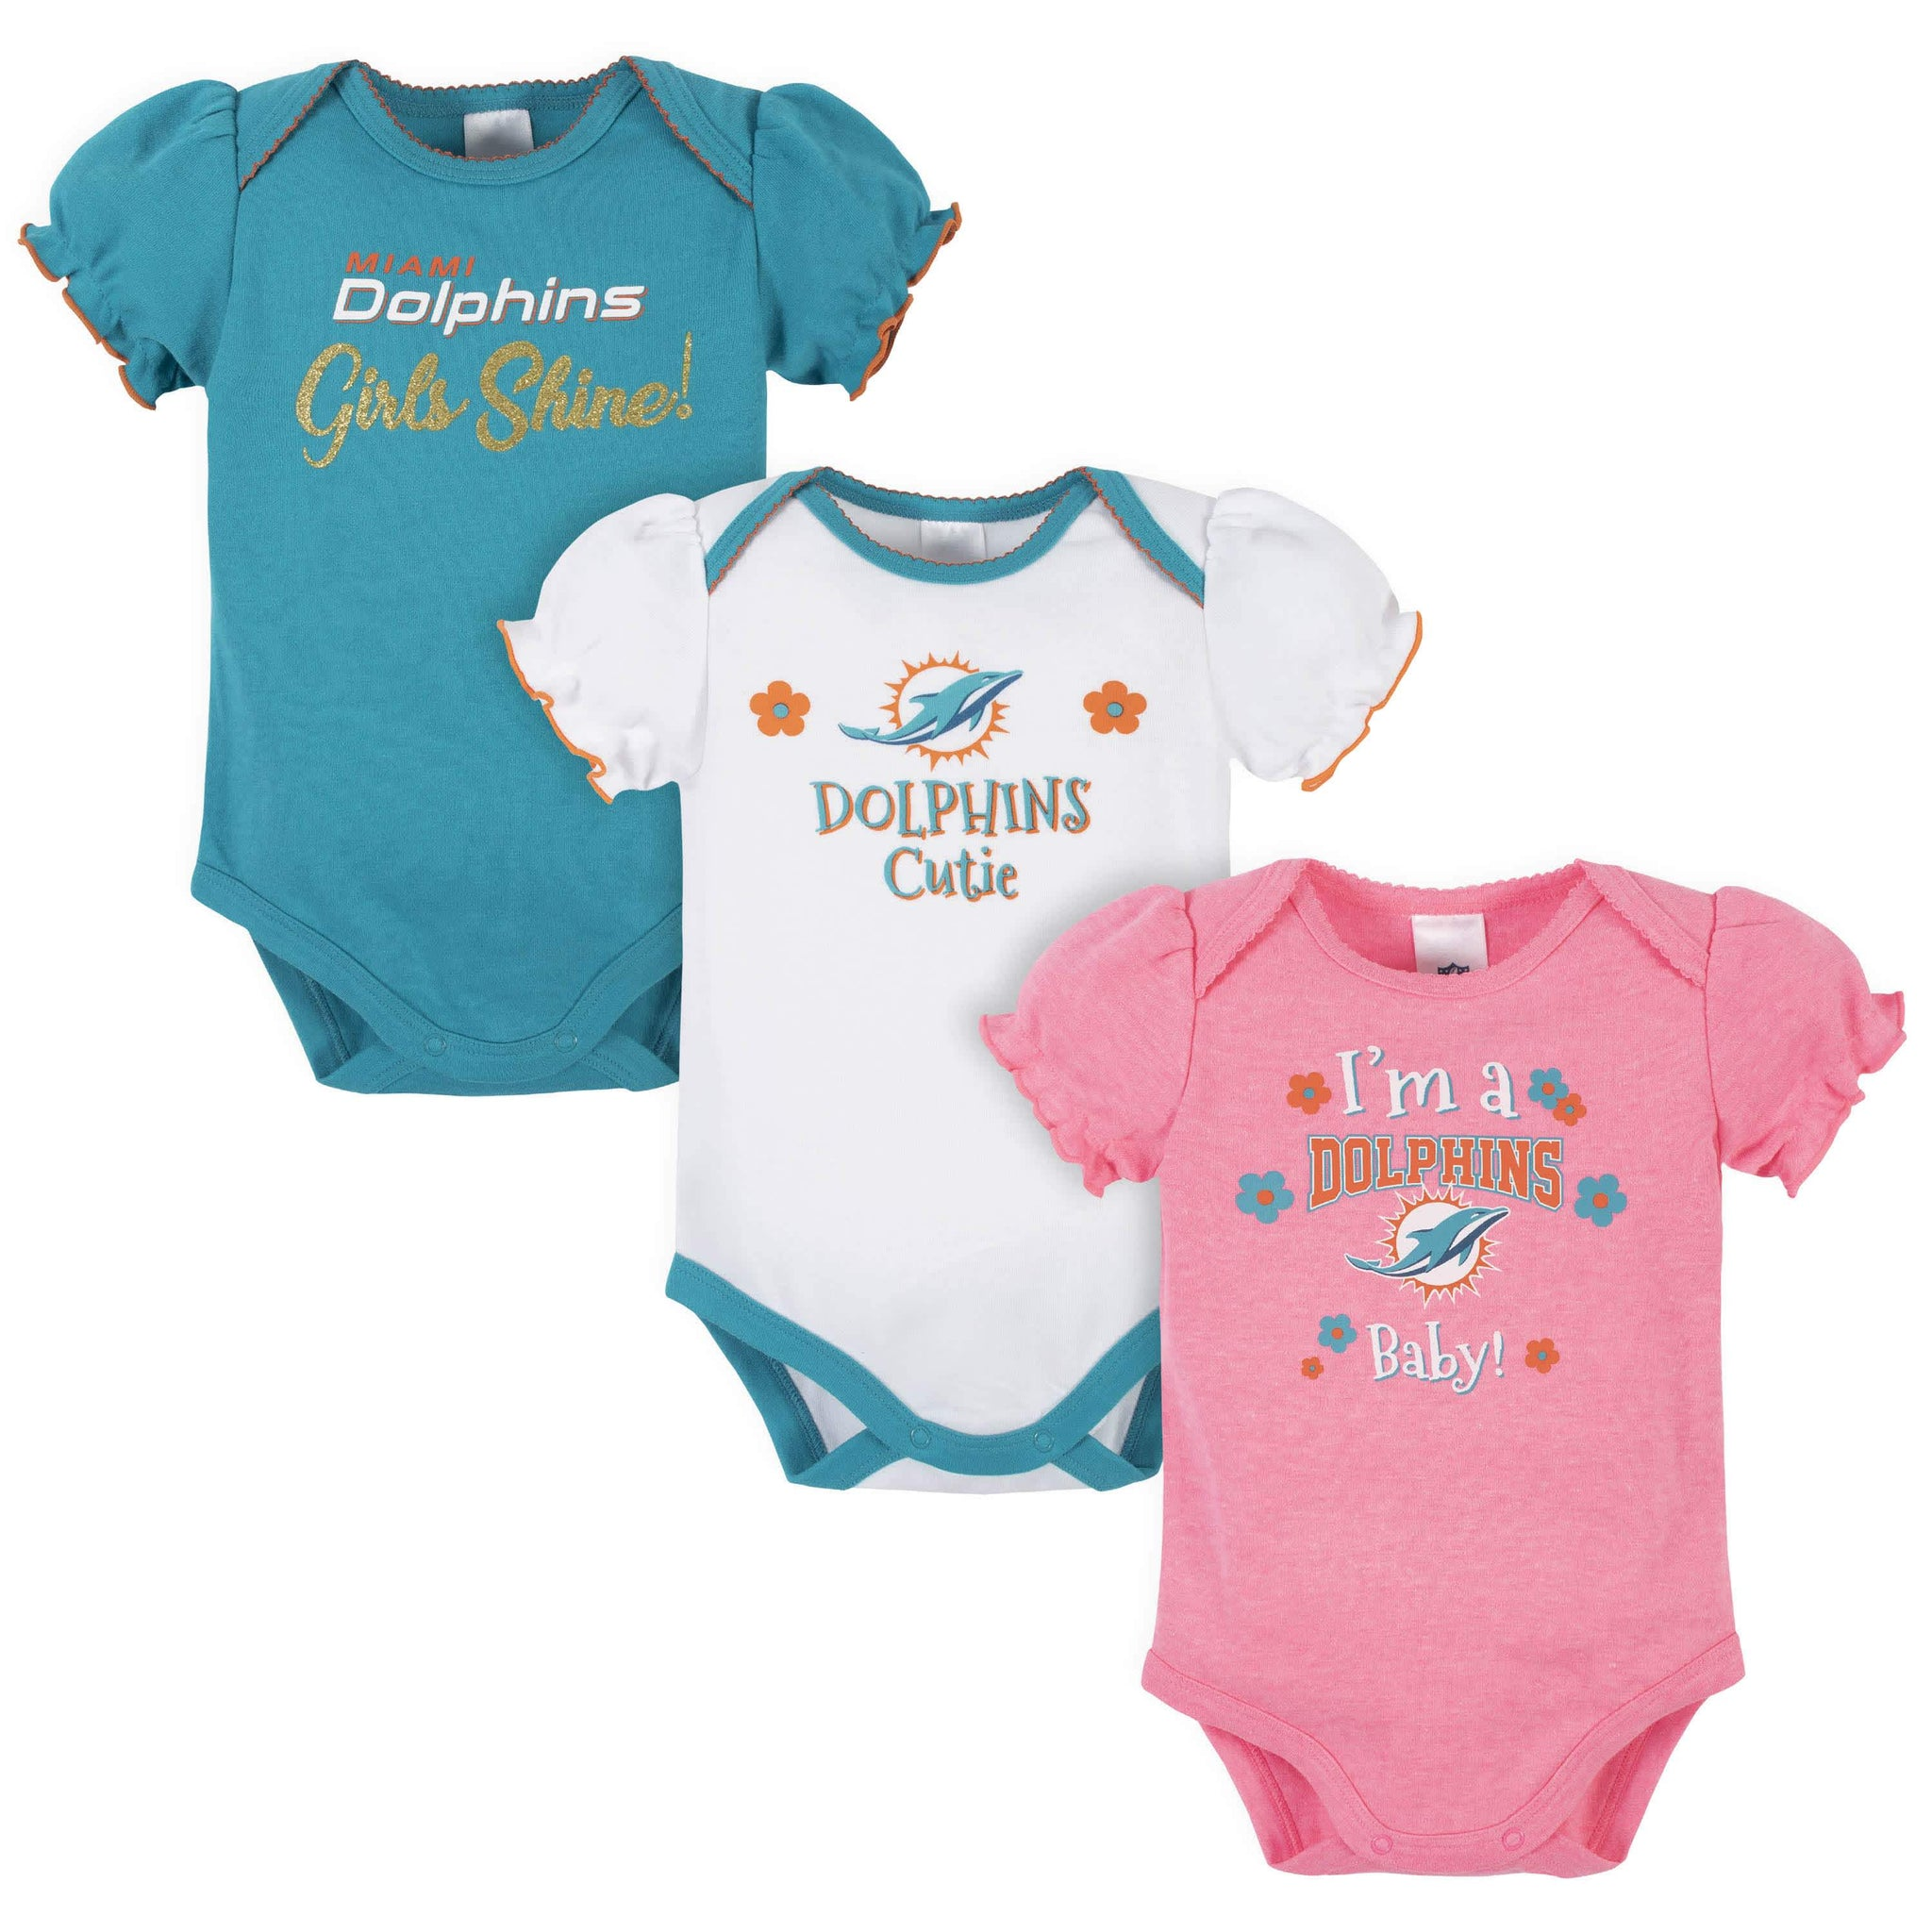 Miami Dolphins Baby Girls Short Sleeve Bodysuits